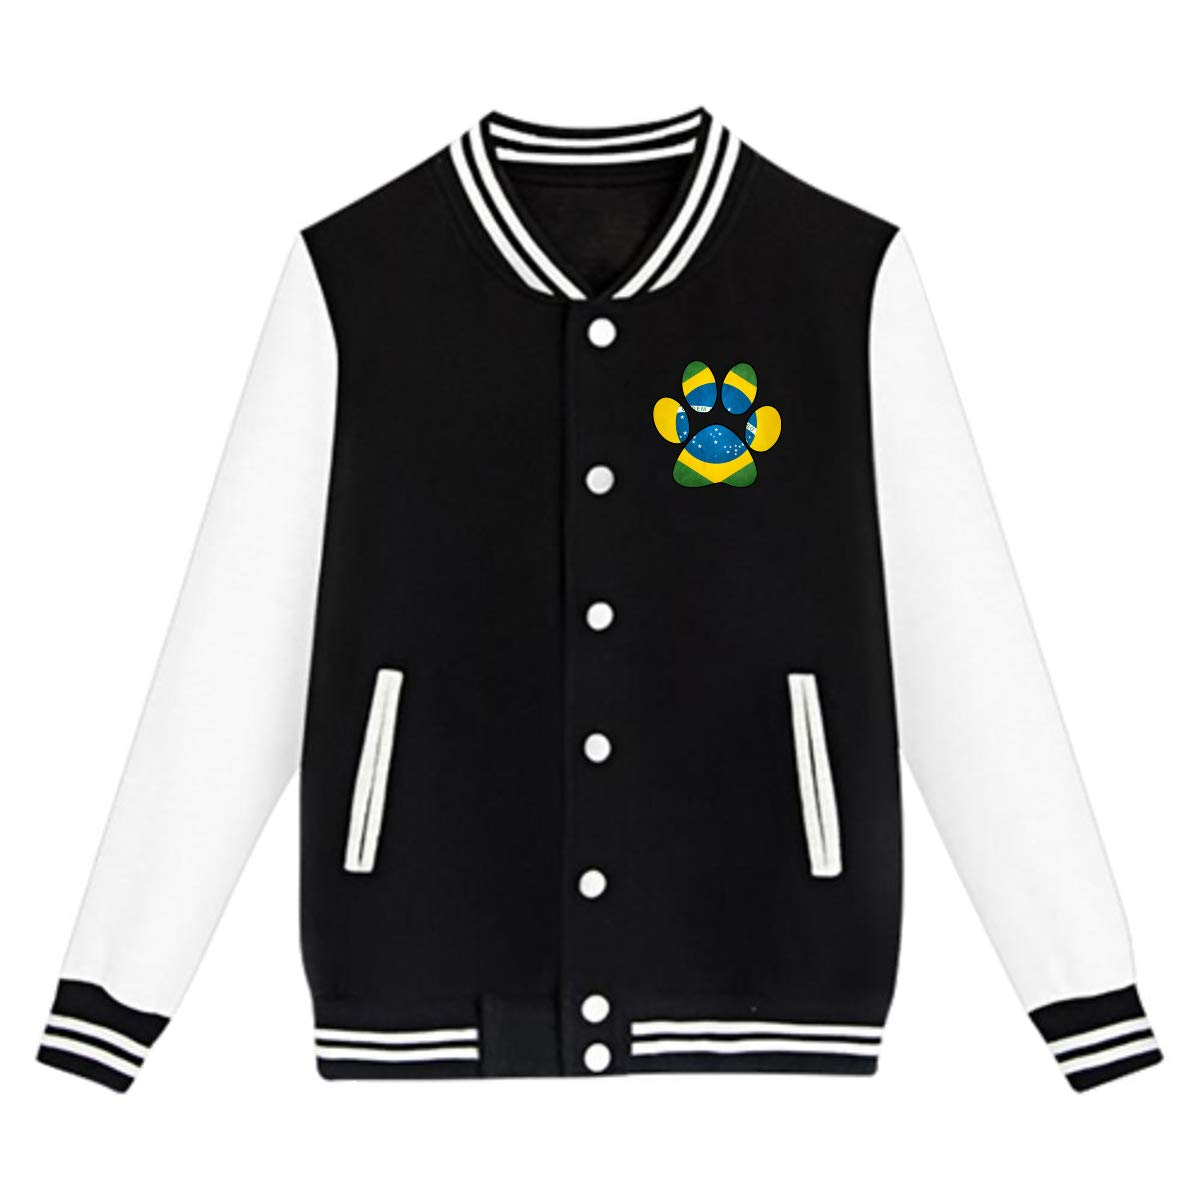 Unisex Teen Baseball Uniform Jacket Brazil Flag Dog Paw Coat Sweatshirt Outwear